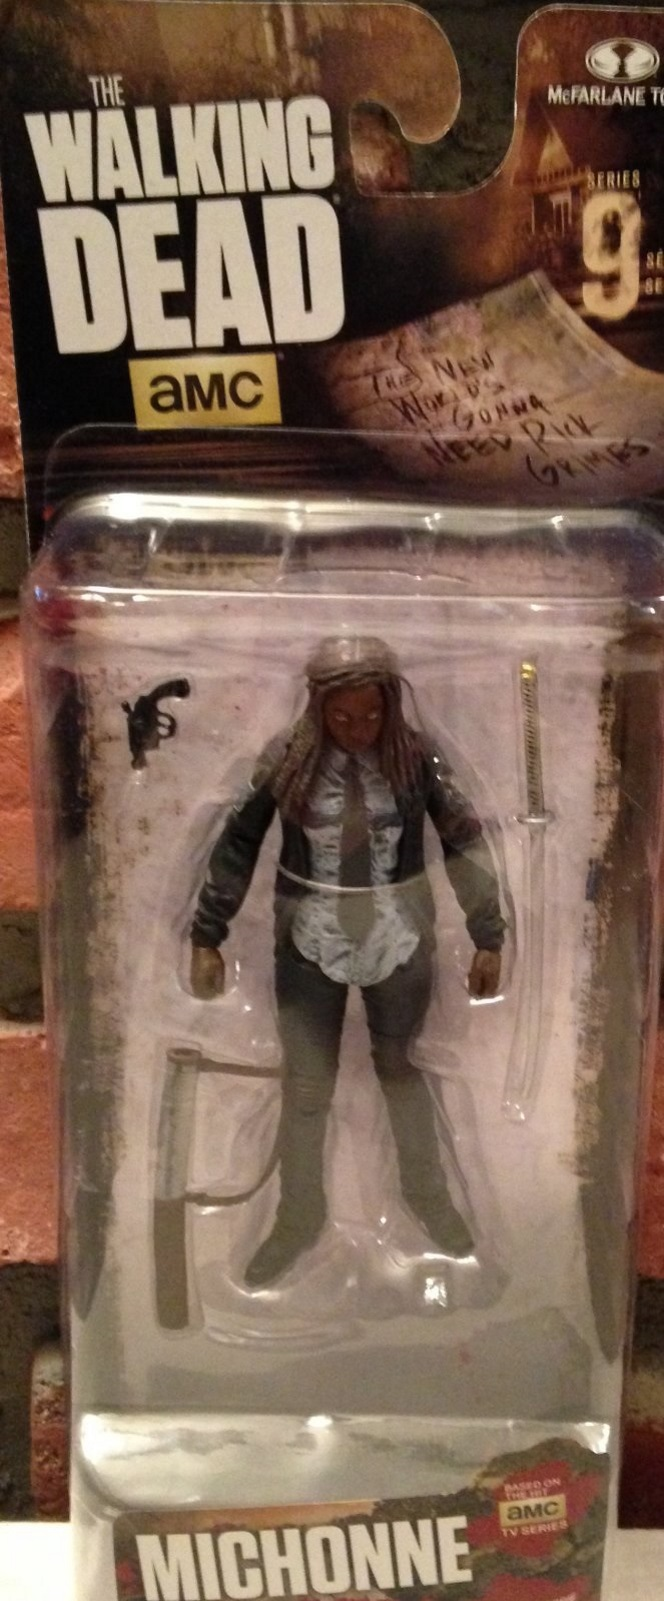 Michonne TV Series 9 The Walking Dead McFarlane figure